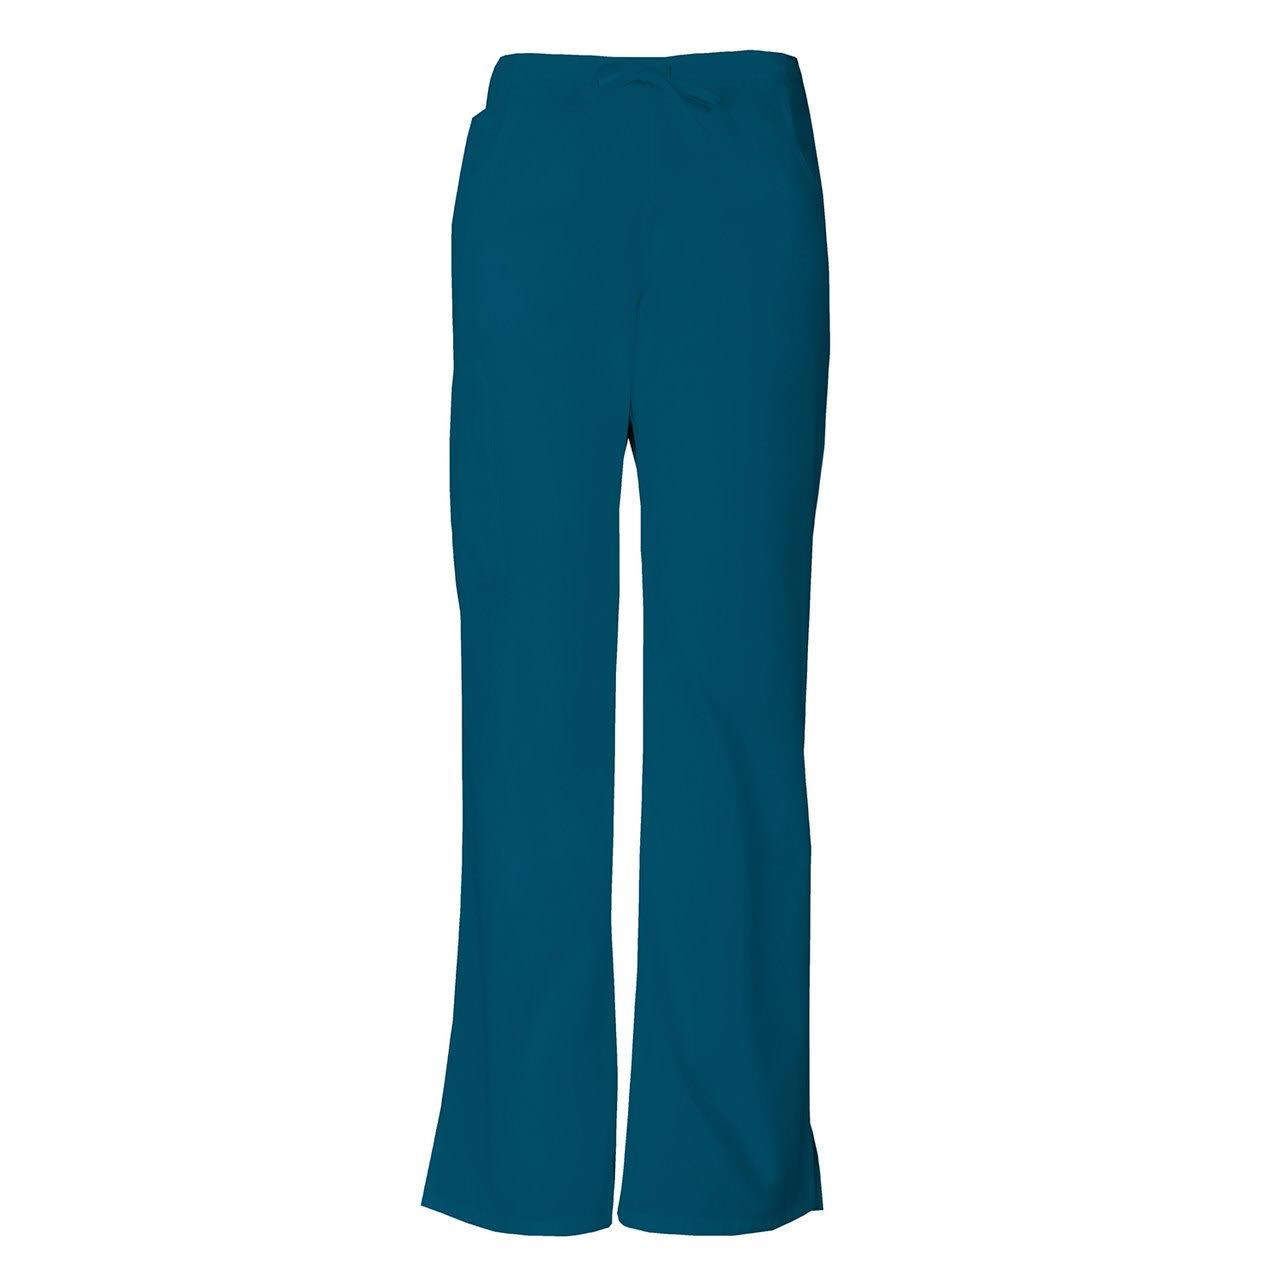 Dickies EDS Signature Scrubs Women's Drawstring Cargo Pants - XL - Caribbean Blue